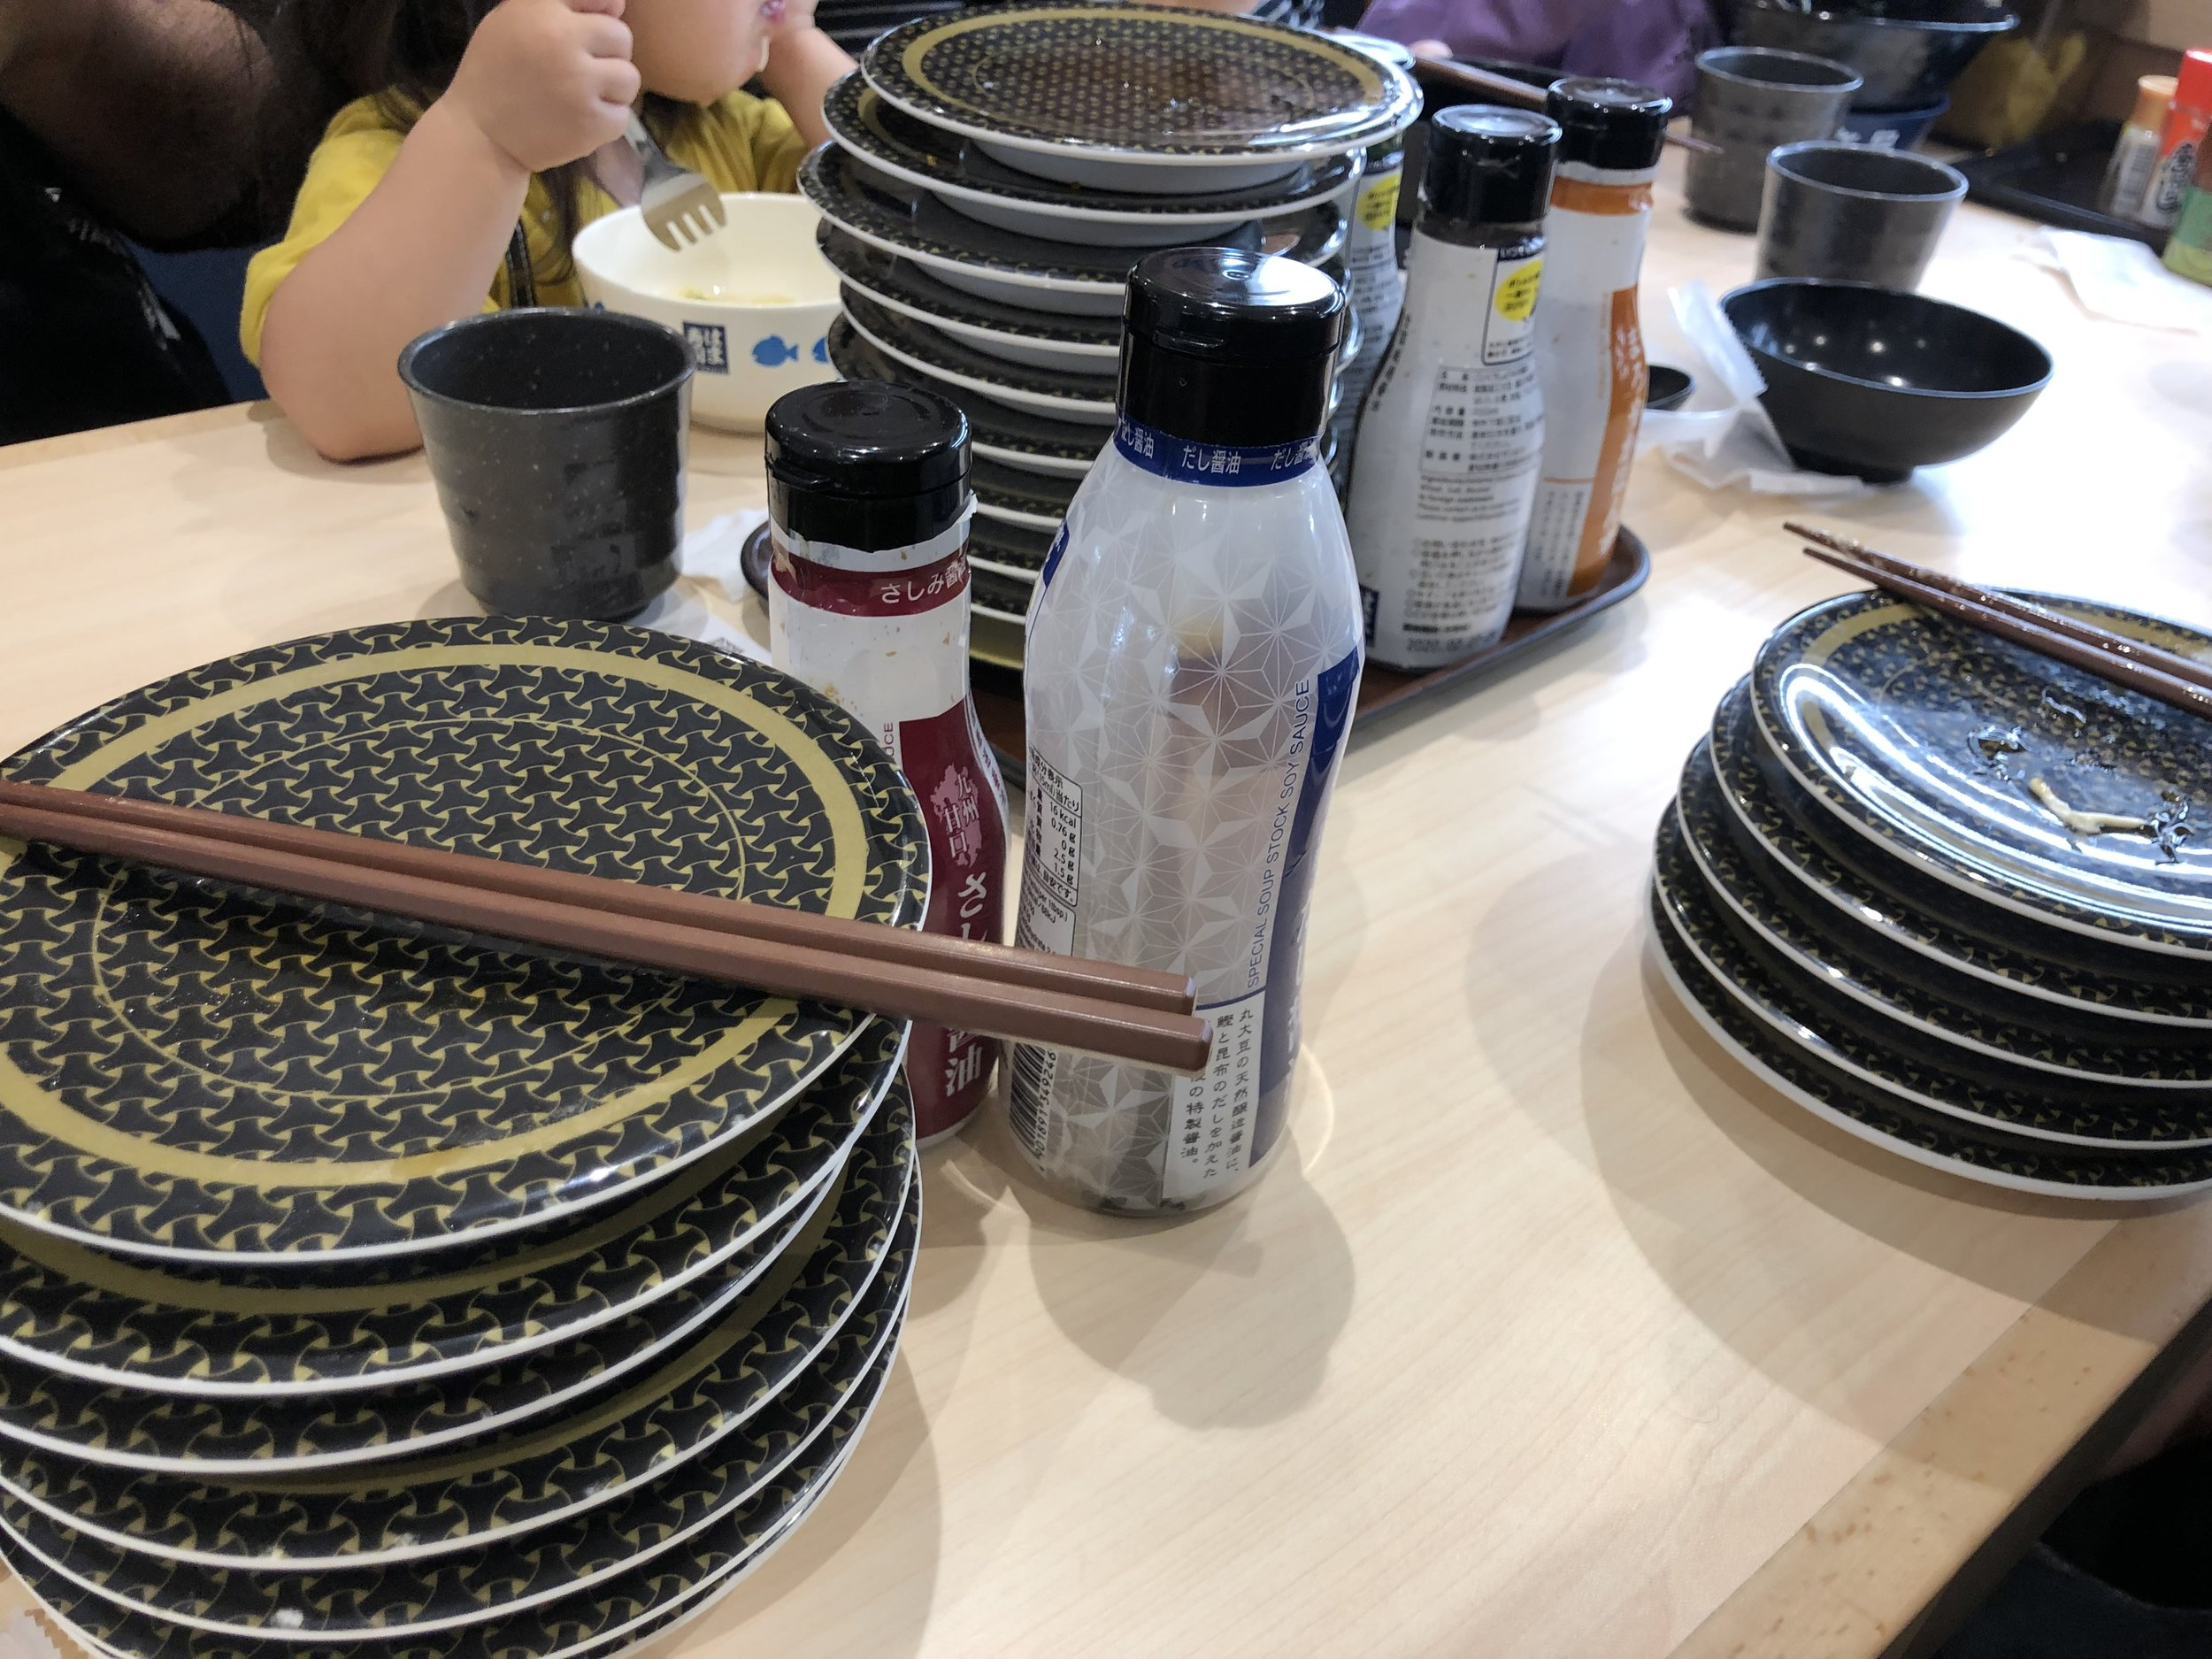 After we left the shop, it was time for some much needed food. What better way to start off the trip than with some conveyor belt sushi! They recently changed how it's done, and sushi doesn't just carousel around anymore, it only comes around when you order.  What's crazy about Japan is everything is so robotic! A little robot greeted us at the door, we told it how many people we had, and it seated us. No waitress or waiter, and everything was done through touch screen at your table. Crazy world!